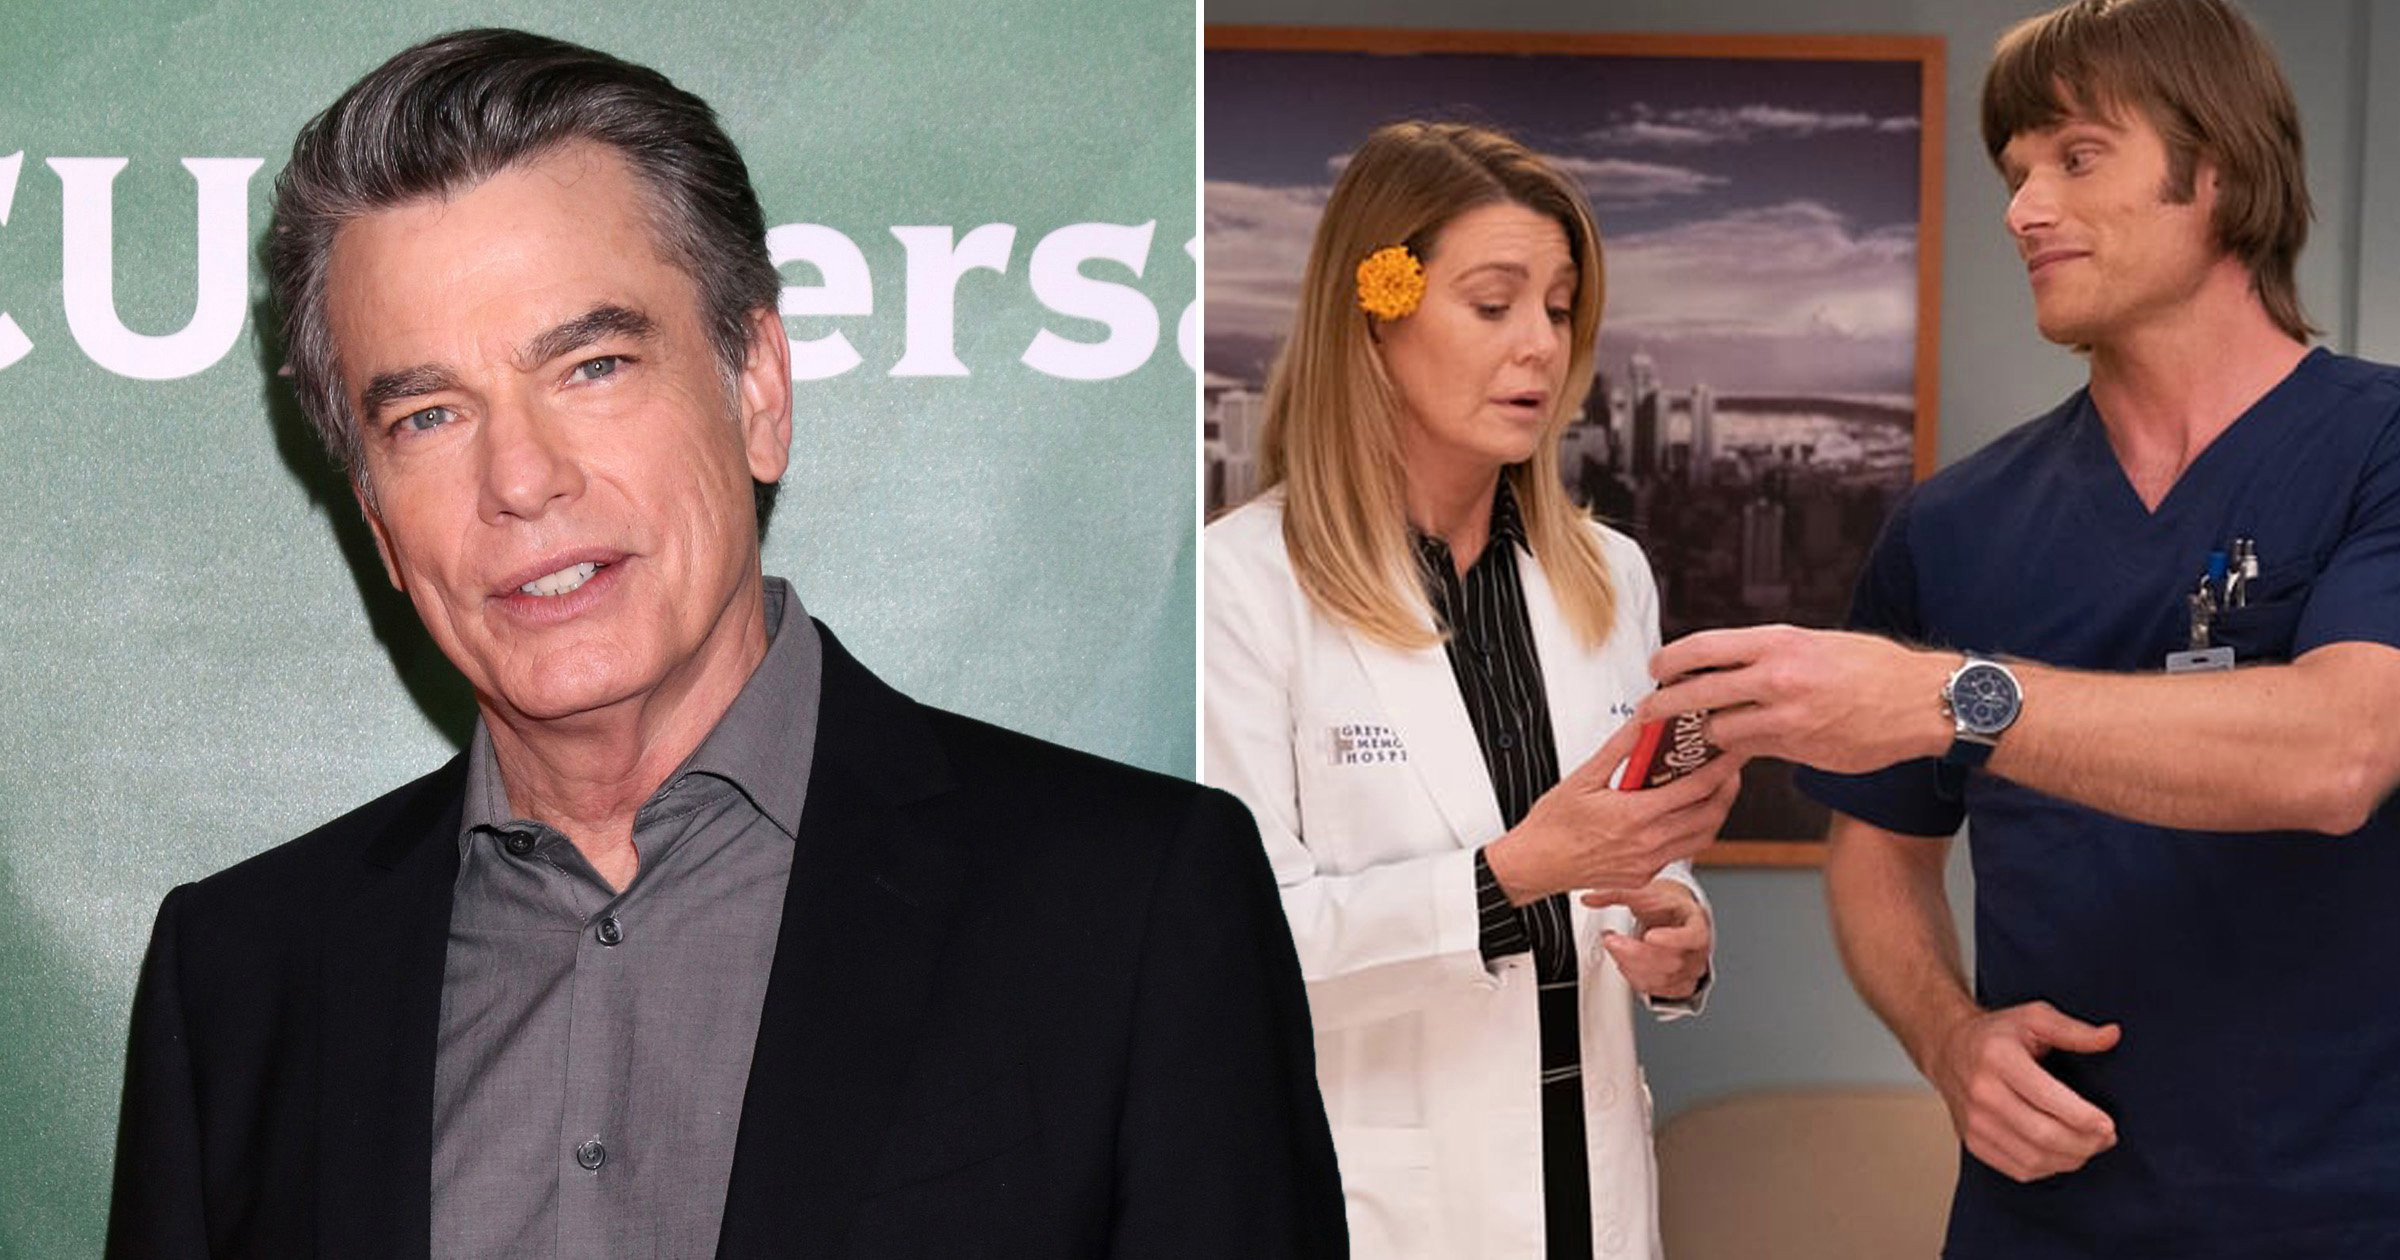 Peter Gallagher to reunite with The OC co-star as he joins Grey's Anatomy for recurring role in Season 18